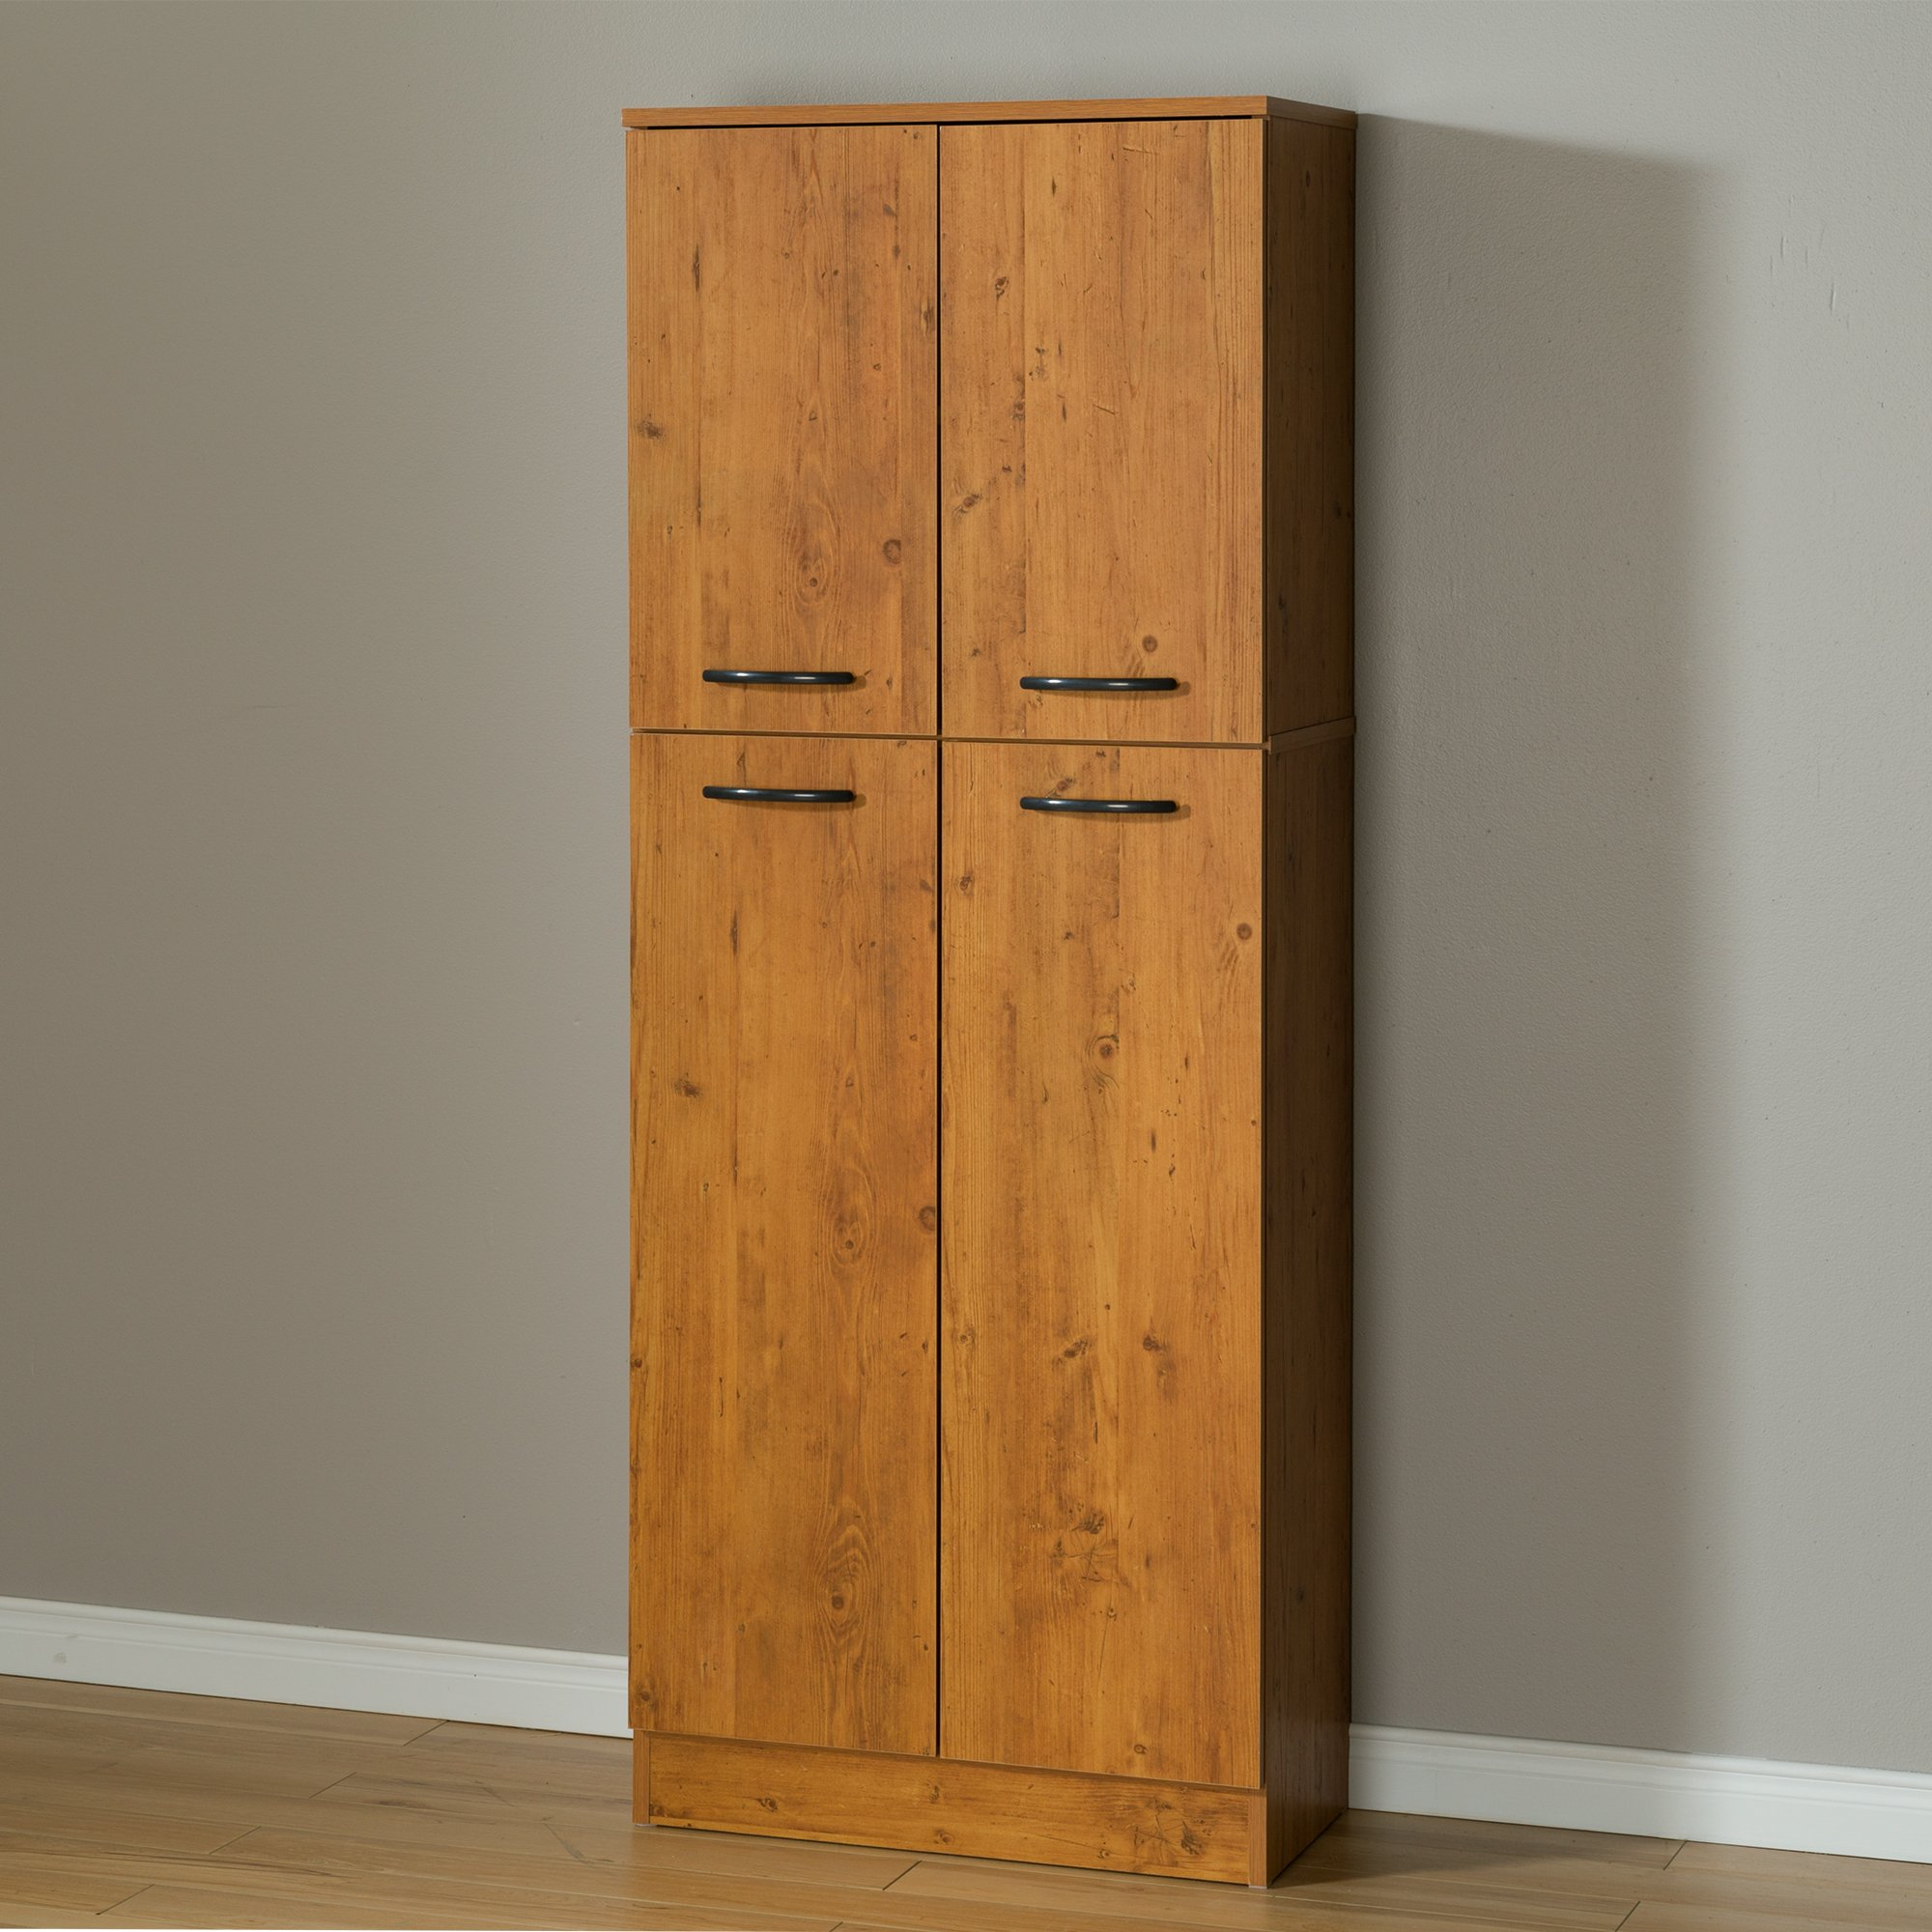 South Shore Axess 4-Shelf Pantry Storage, Country Pine by South Shore (Image #1)